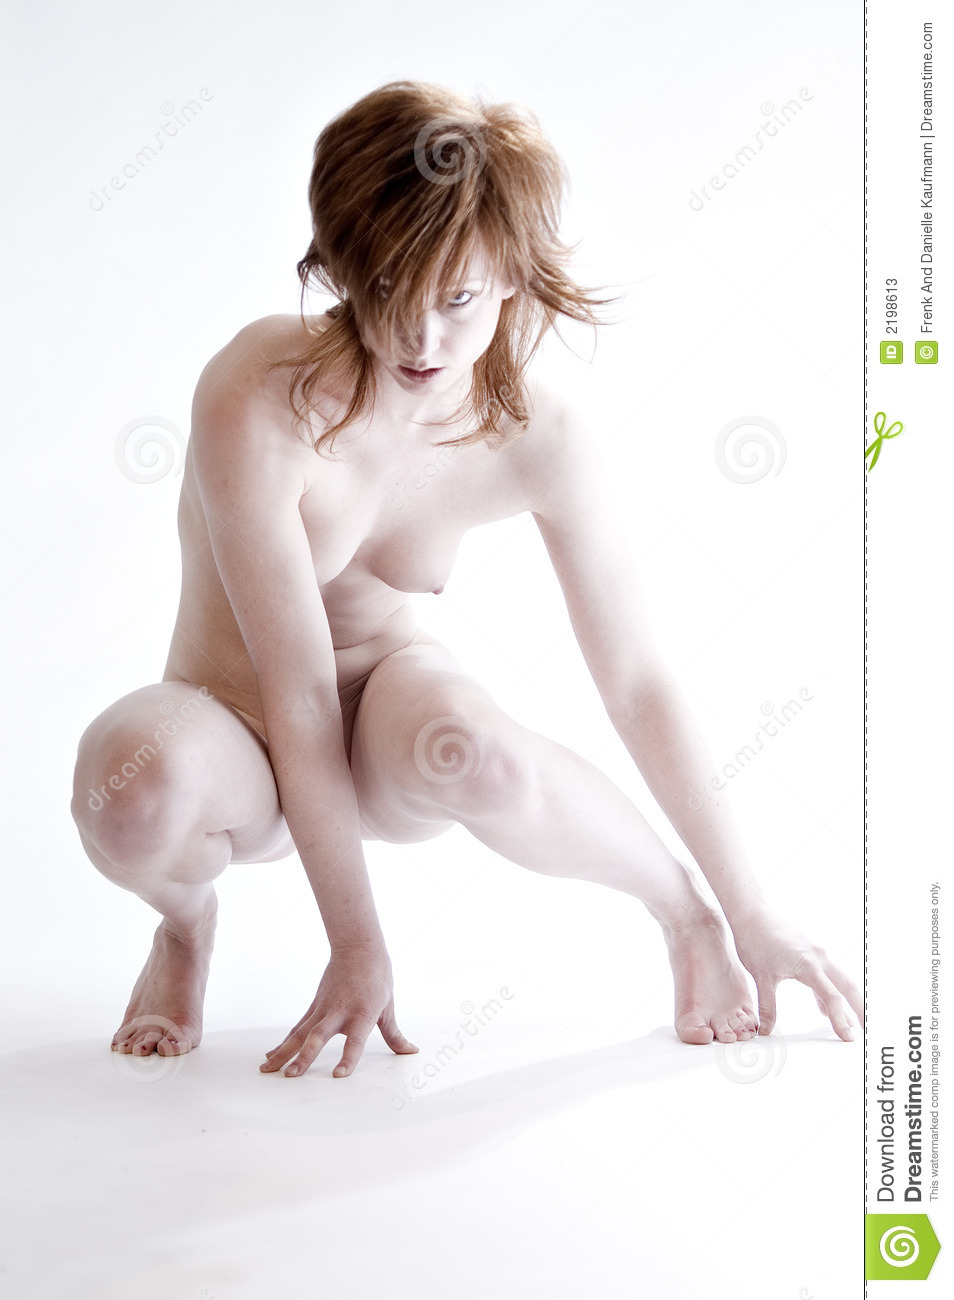 Doesn't Girl crouching porn picture understood